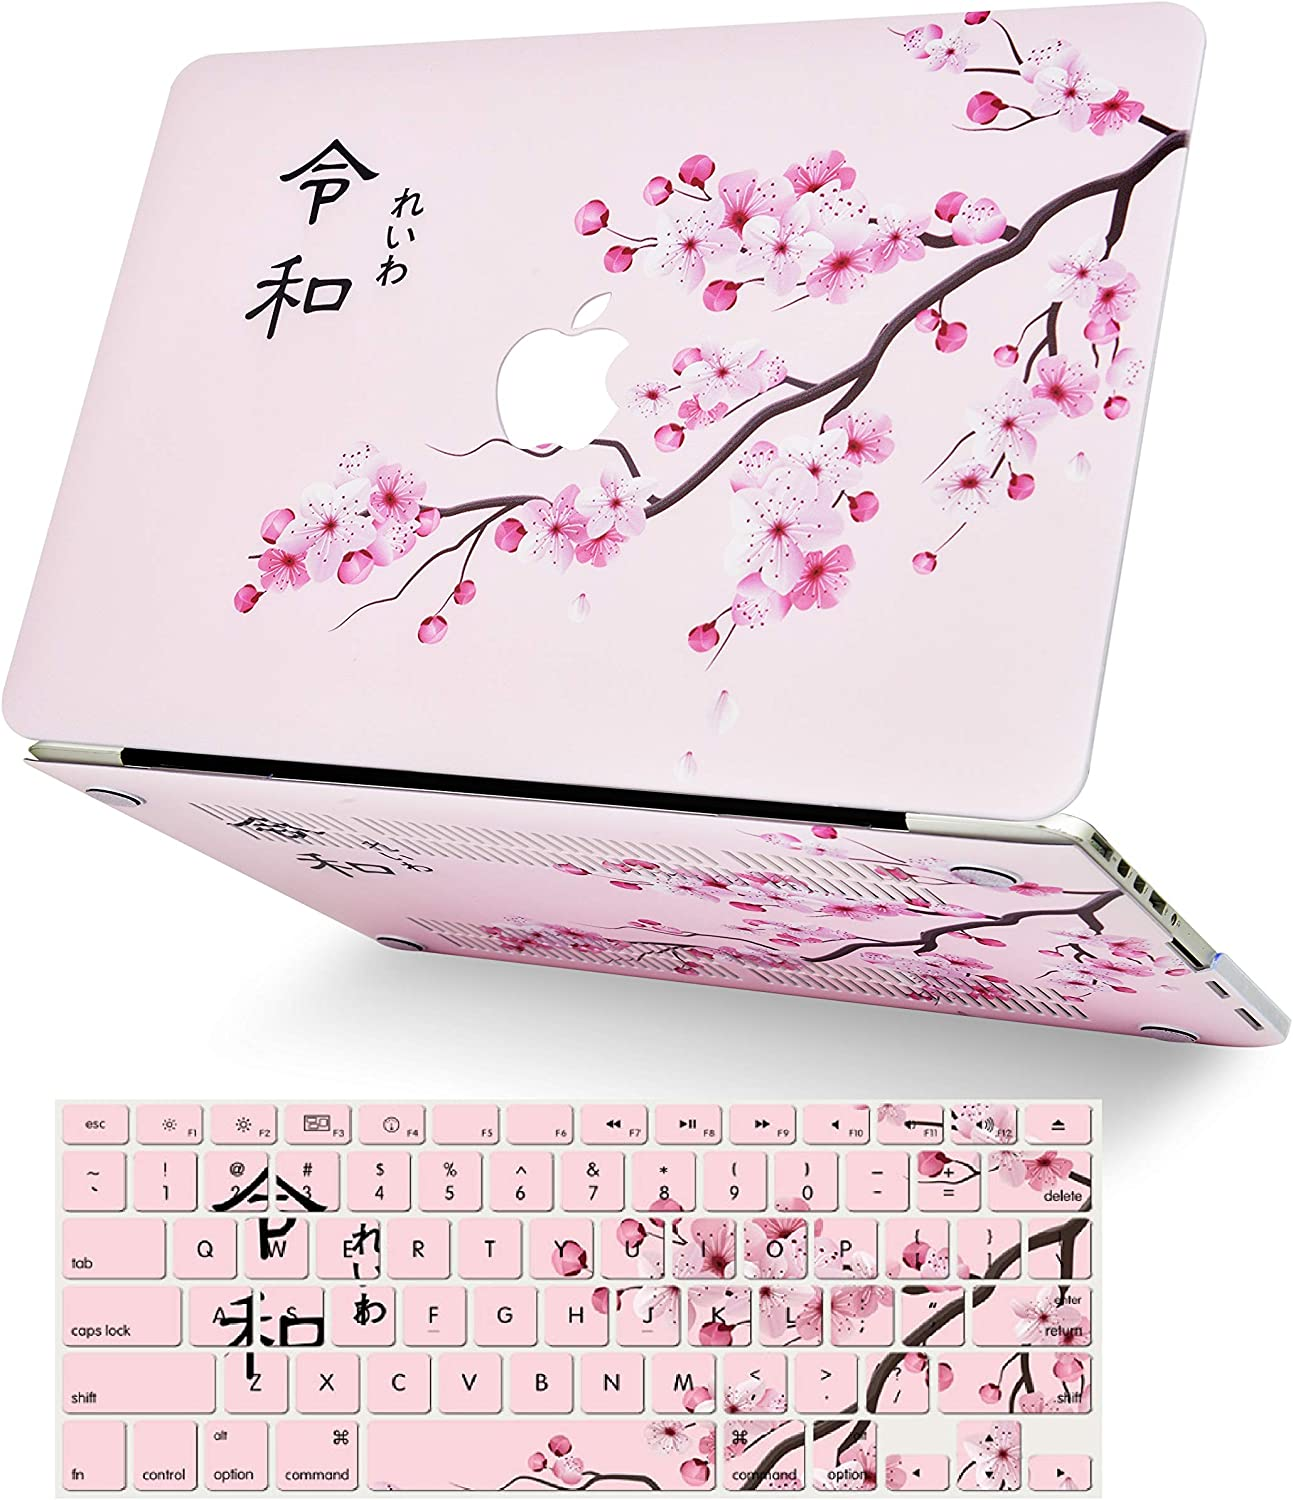 "LuvCase 2 in 1 Laptop Case for MacBook Pro 13"" (2020) with Touch Bar A2251/A2289 Rubberized Plastic Hard Shell Cover & Keyboard Cover (Cherry Blossom)"